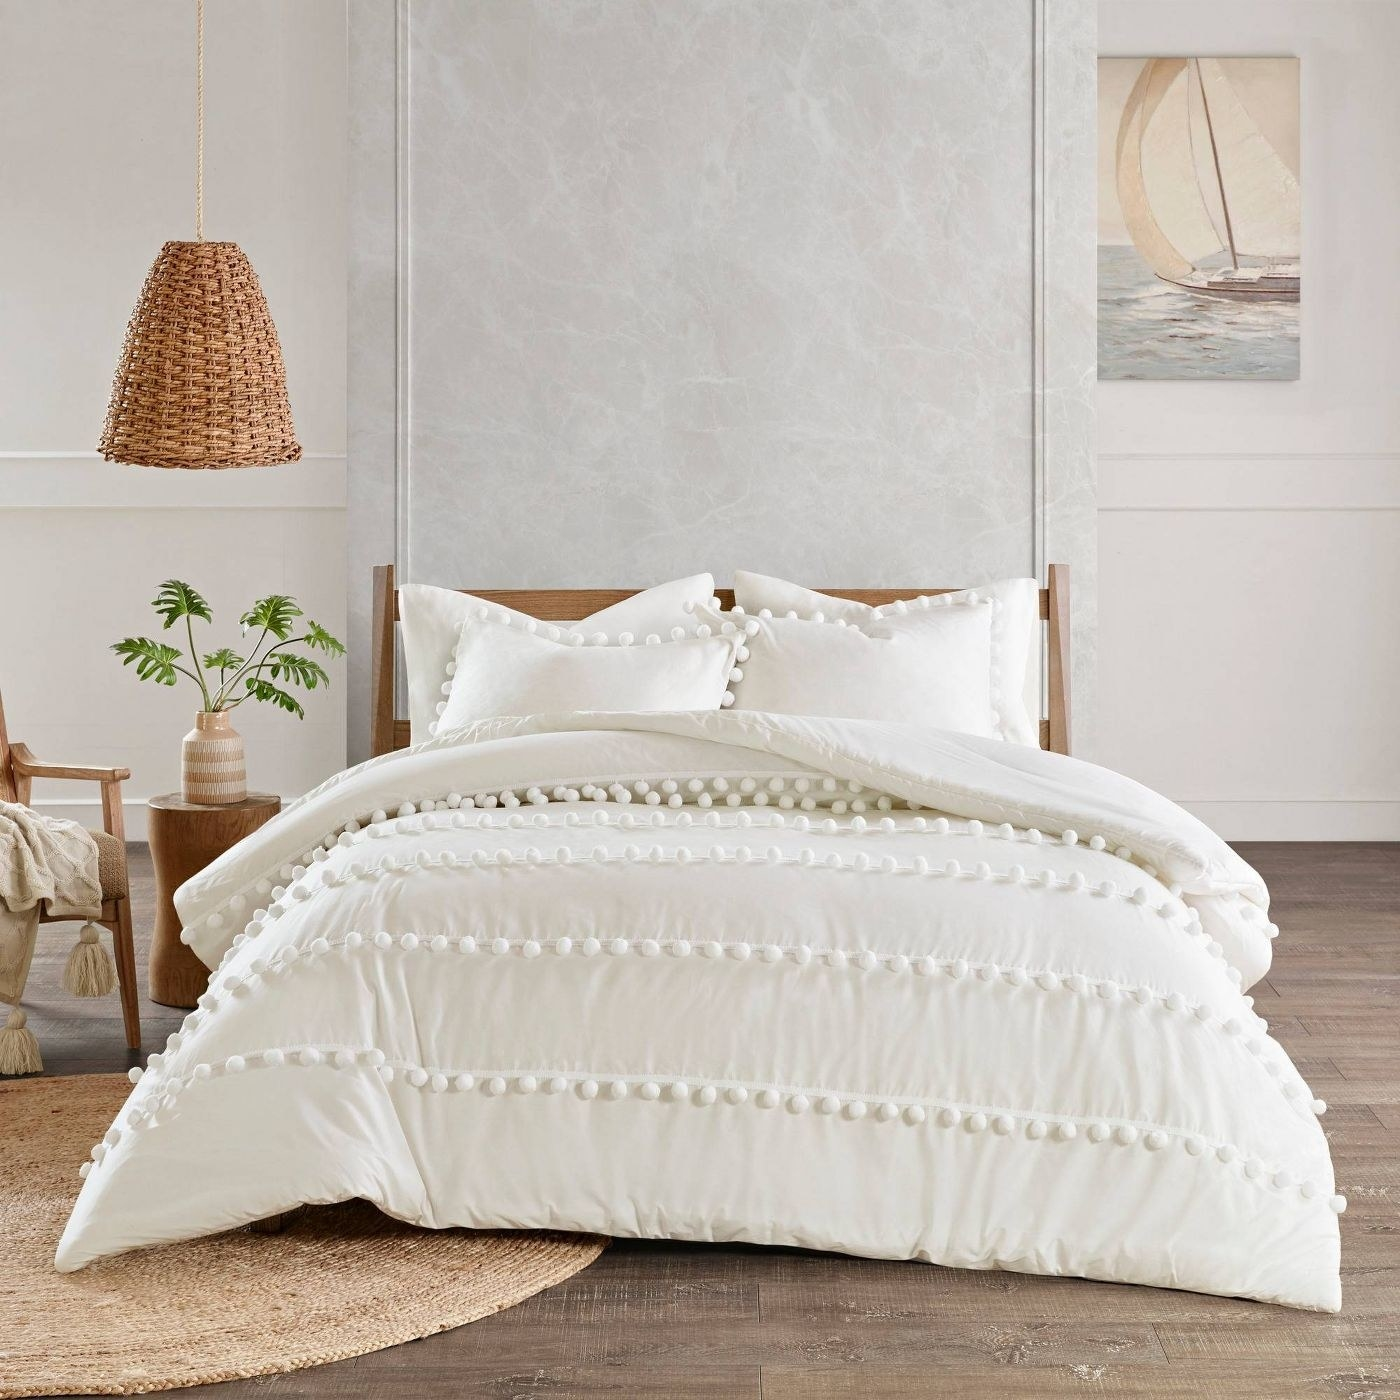 ivory duvet cover with pom pom details and two pillow shaws